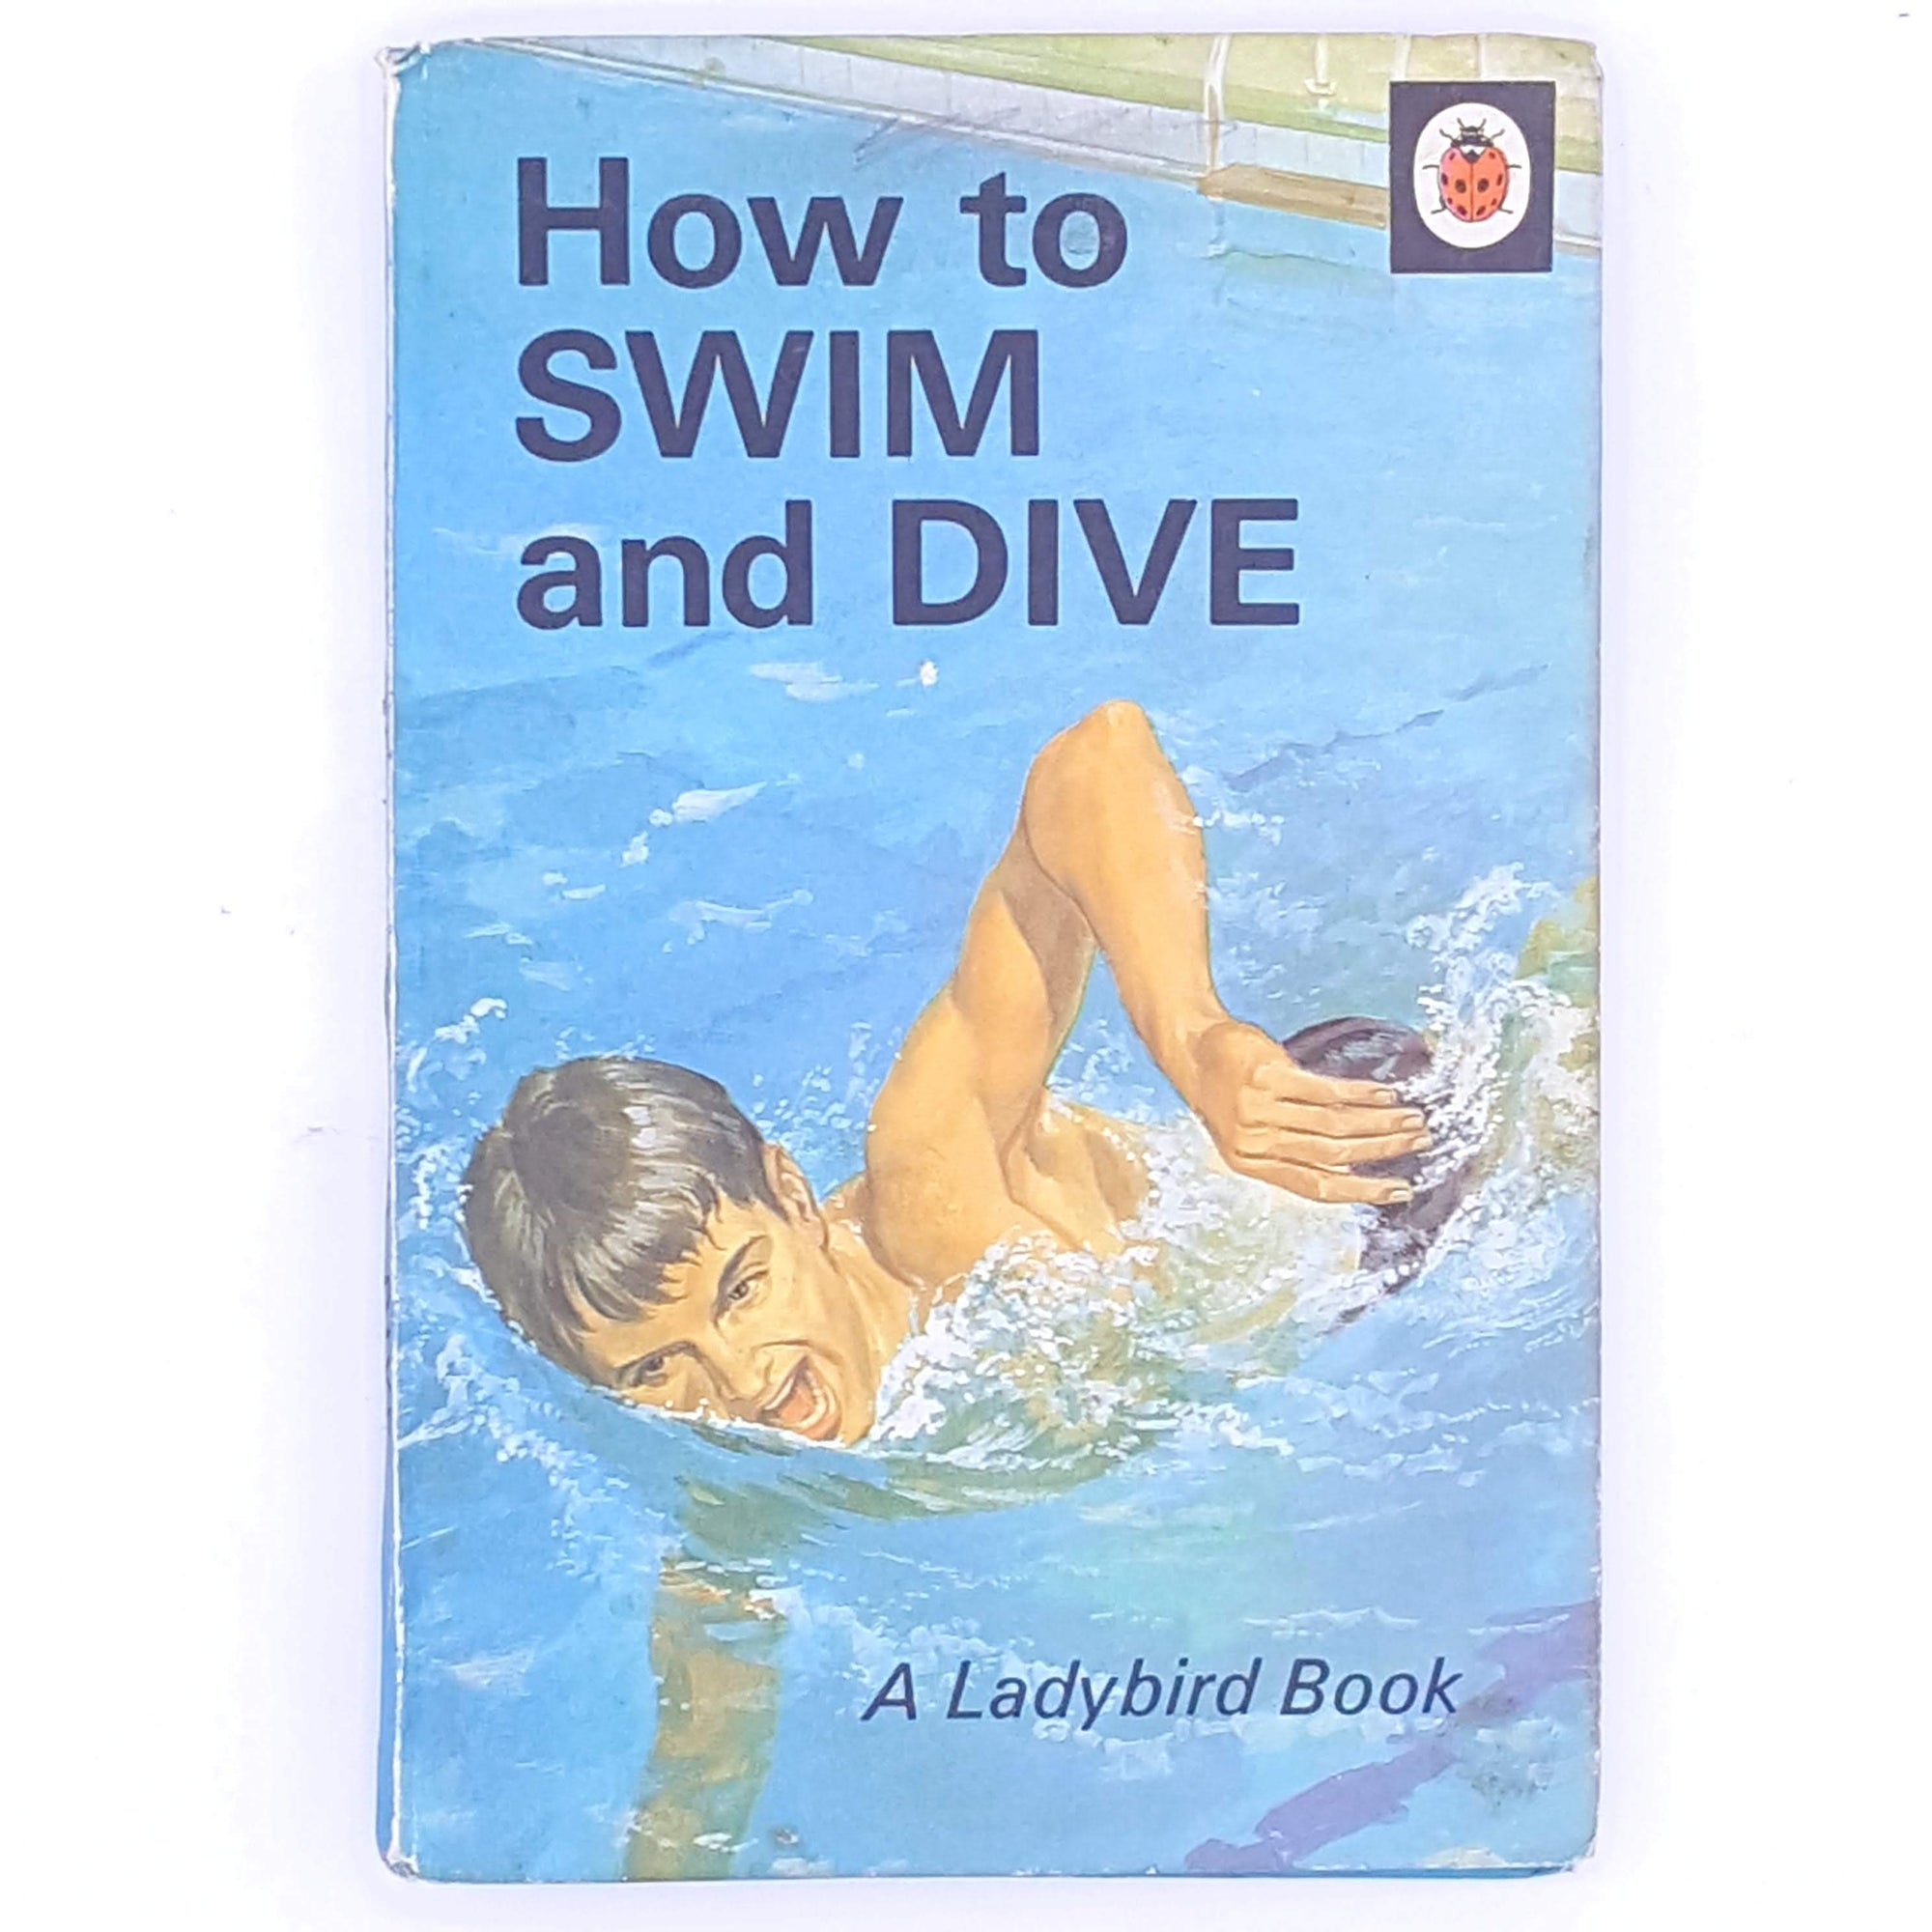 Ladybird How To Swim and Dive, Henry Marlow, 1971